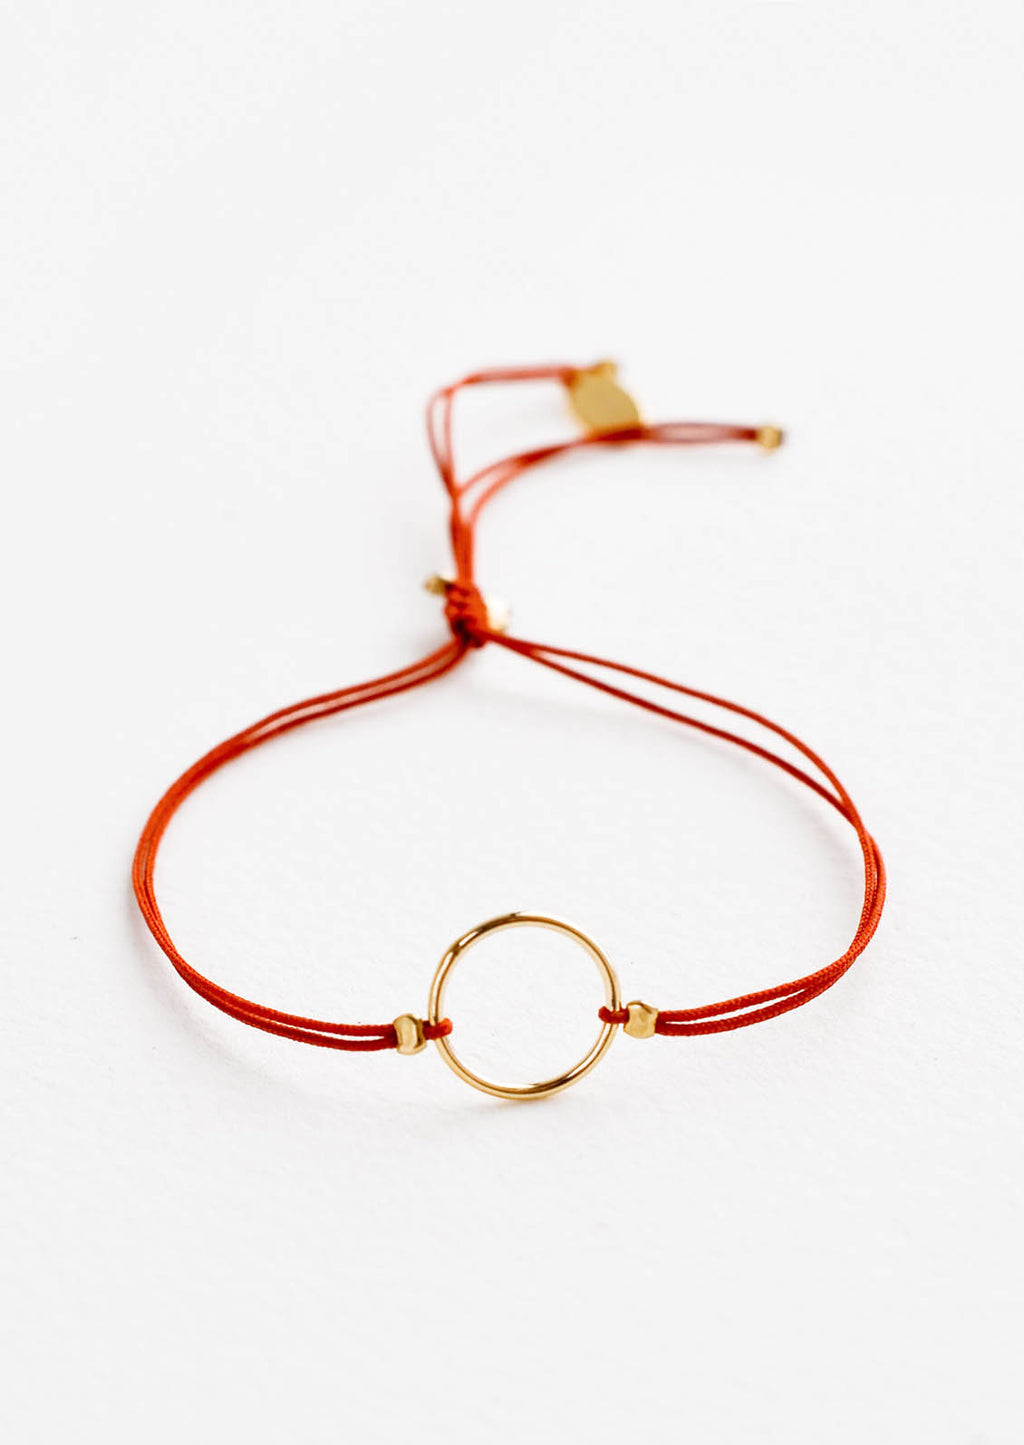 Rust: Bracelet with yellow gold circle charm centered on an adjustable red string.